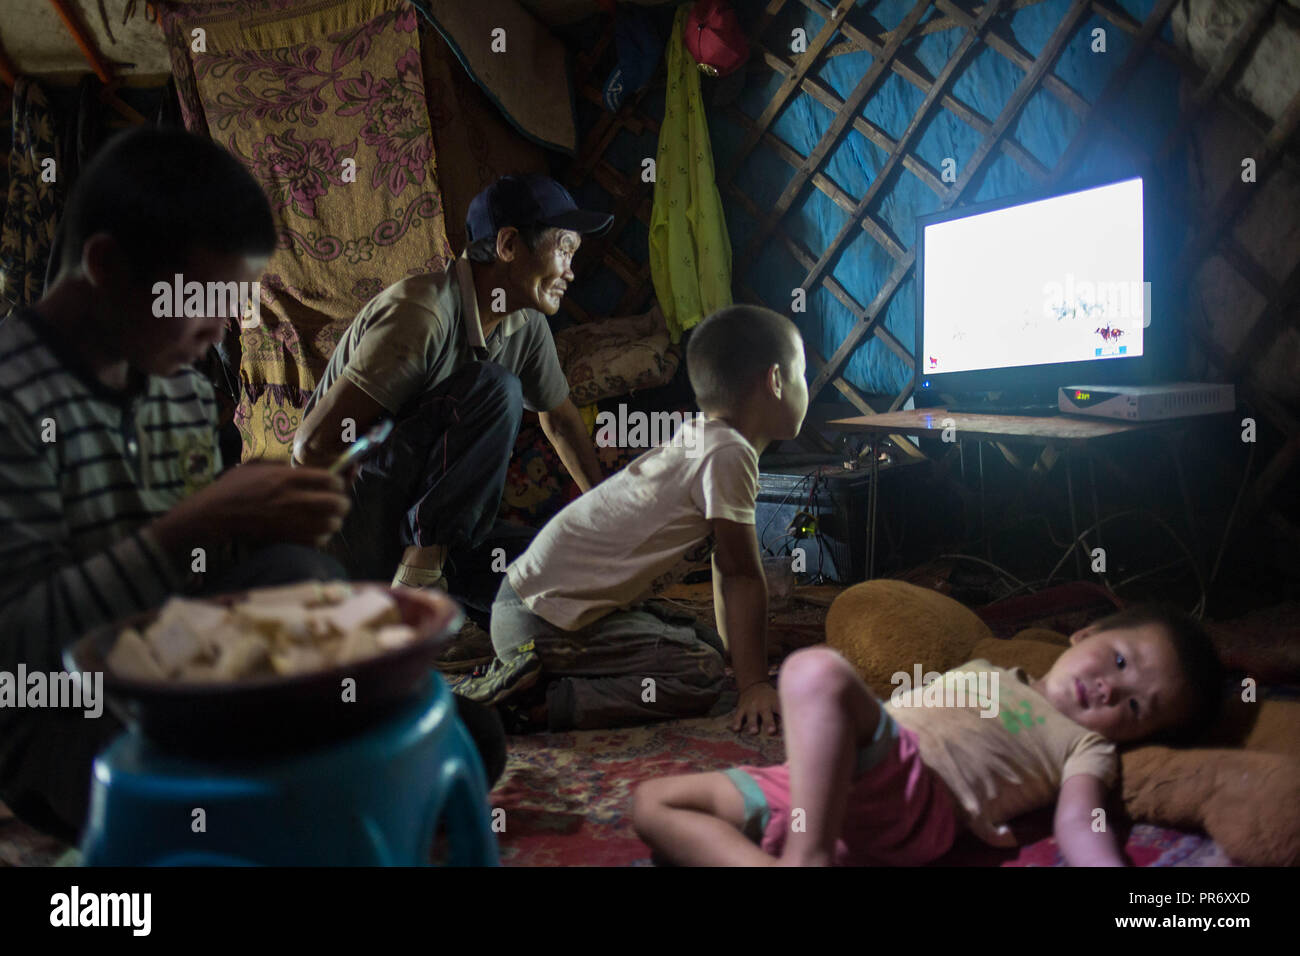 A general view from a local family watching TV inside a yurt after finishing their dinner near the town of Tsogt-Ovoo in Ömnögovi Province in southern Mongolia. - Stock Image